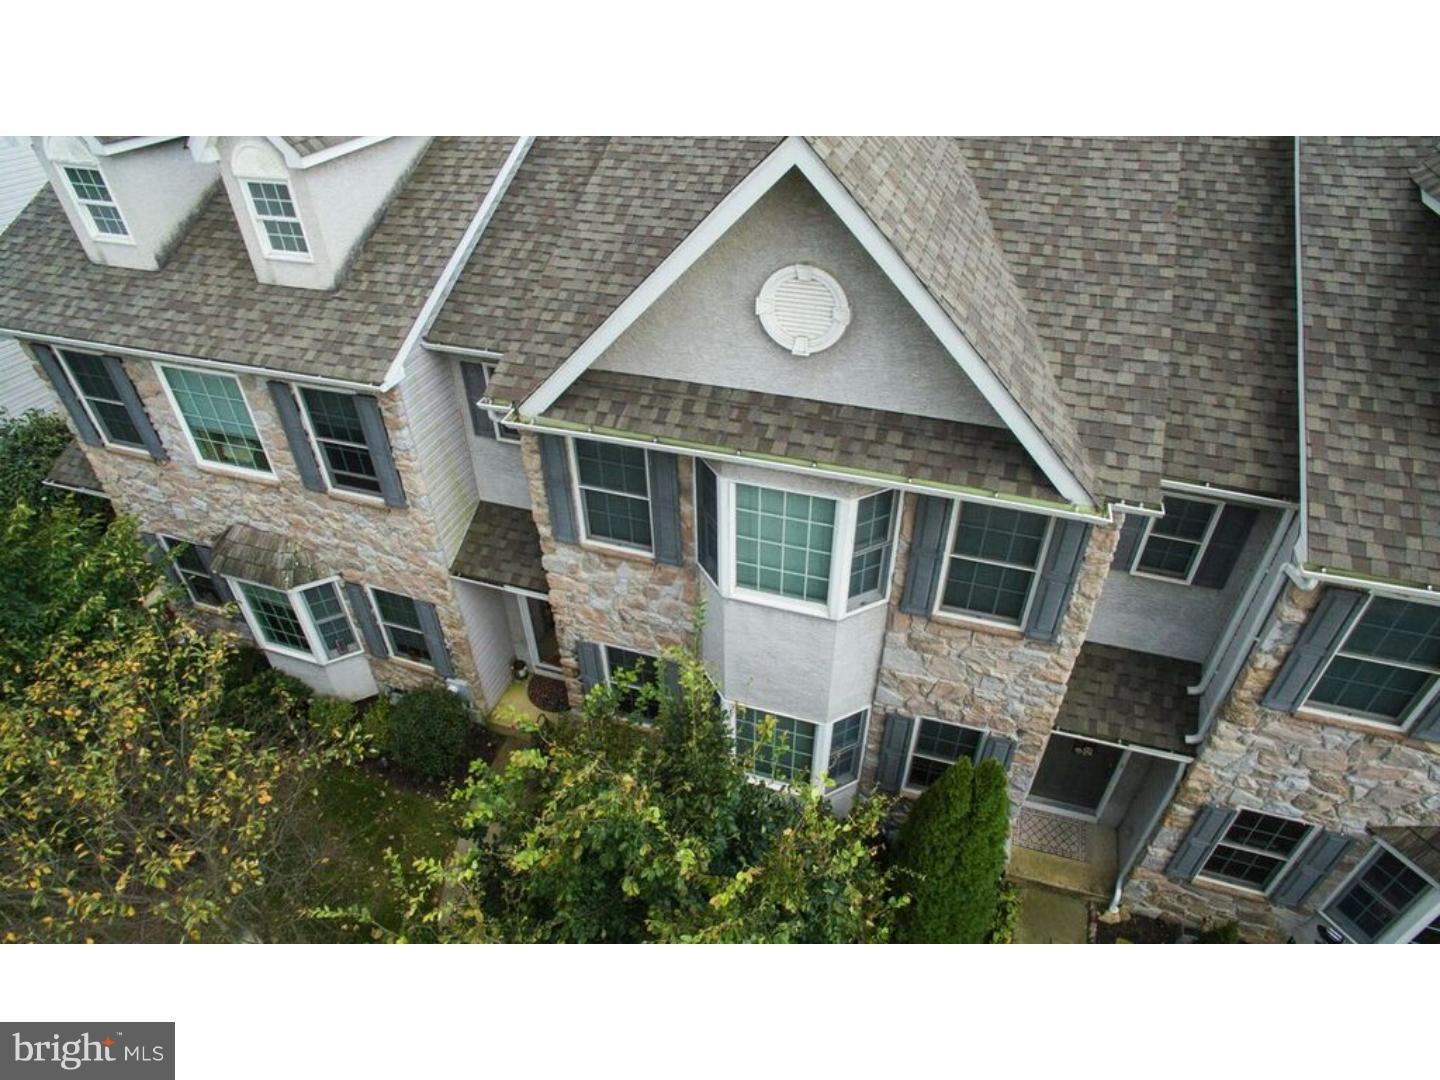 607 Bowers Drive West Chester , PA 19382